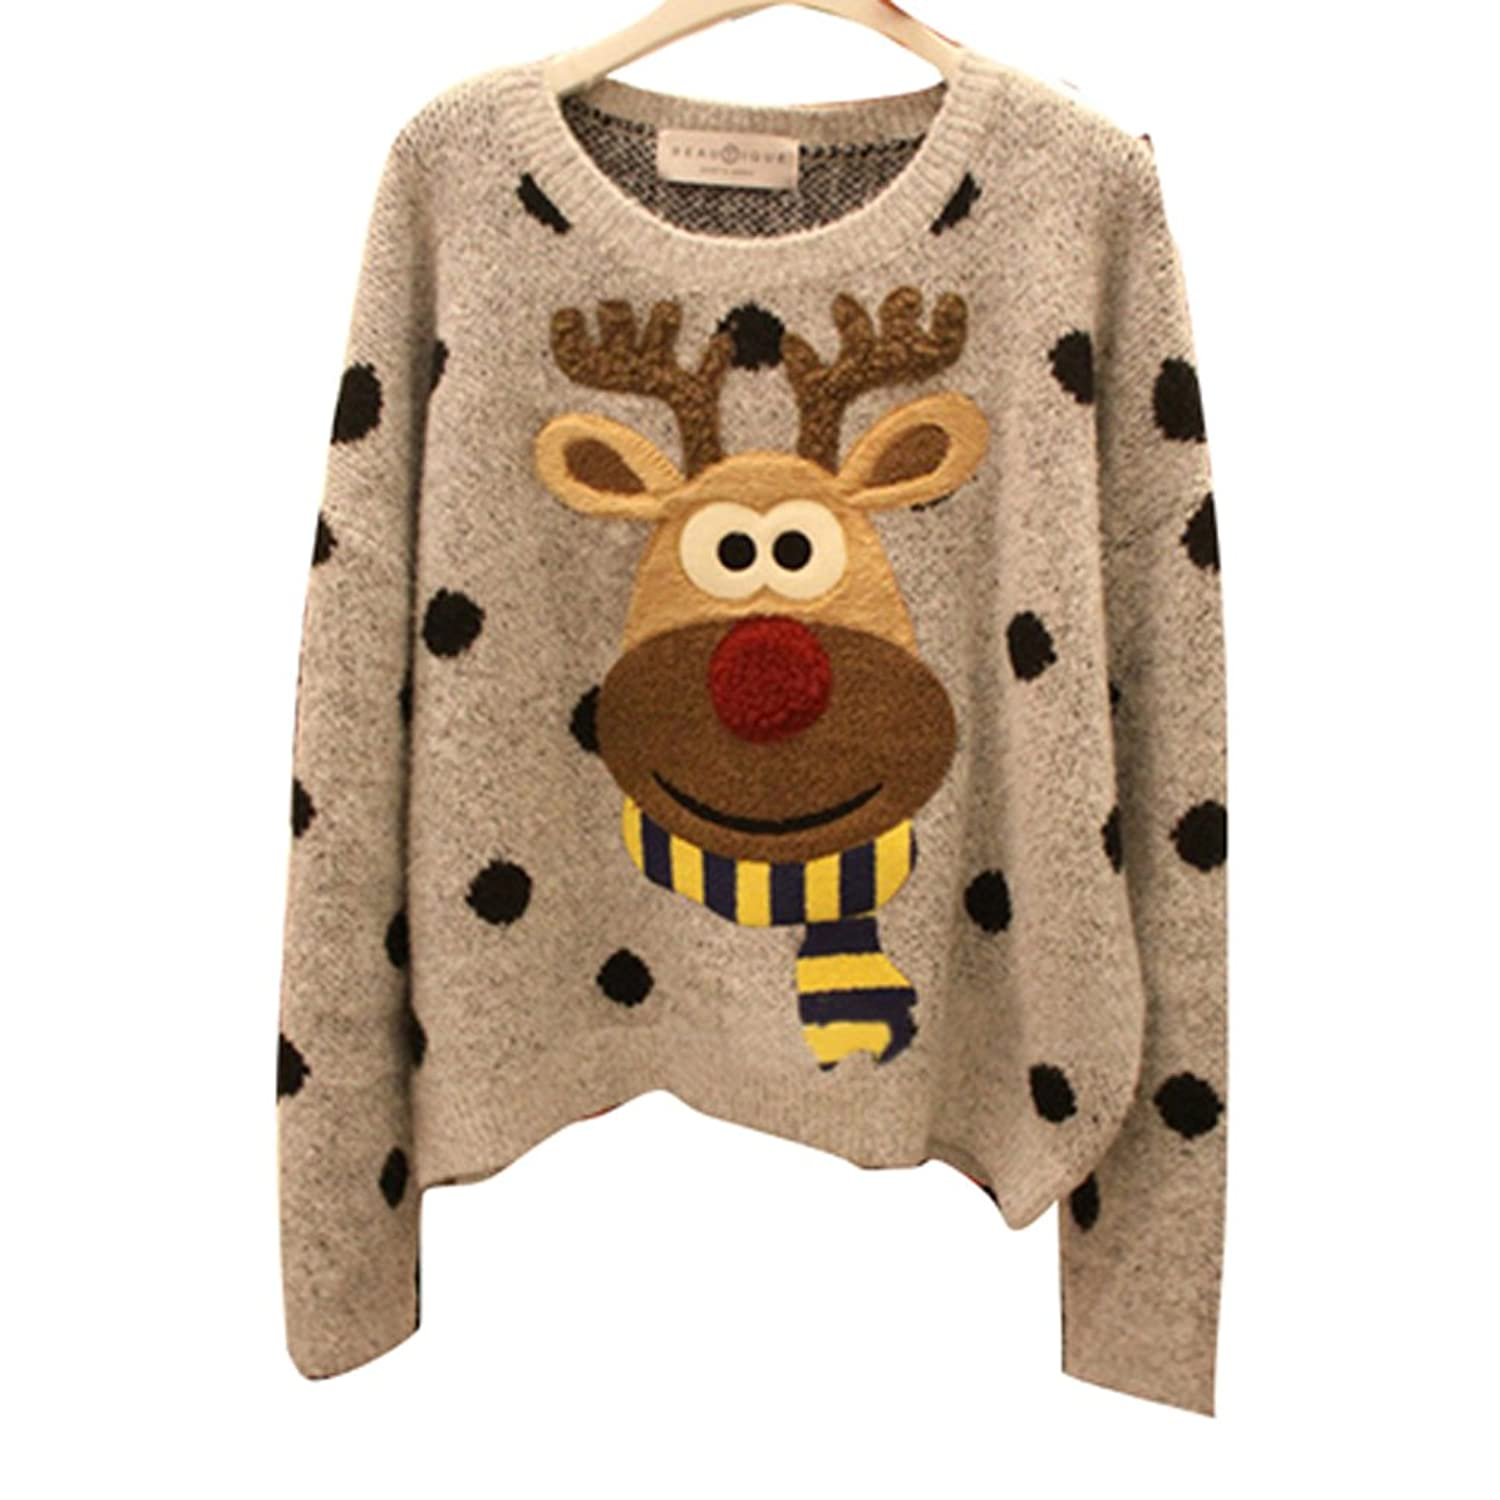 Annisking Womens Christmas Sweater Reindeer Jumper Loose Pullover Gray -10C01